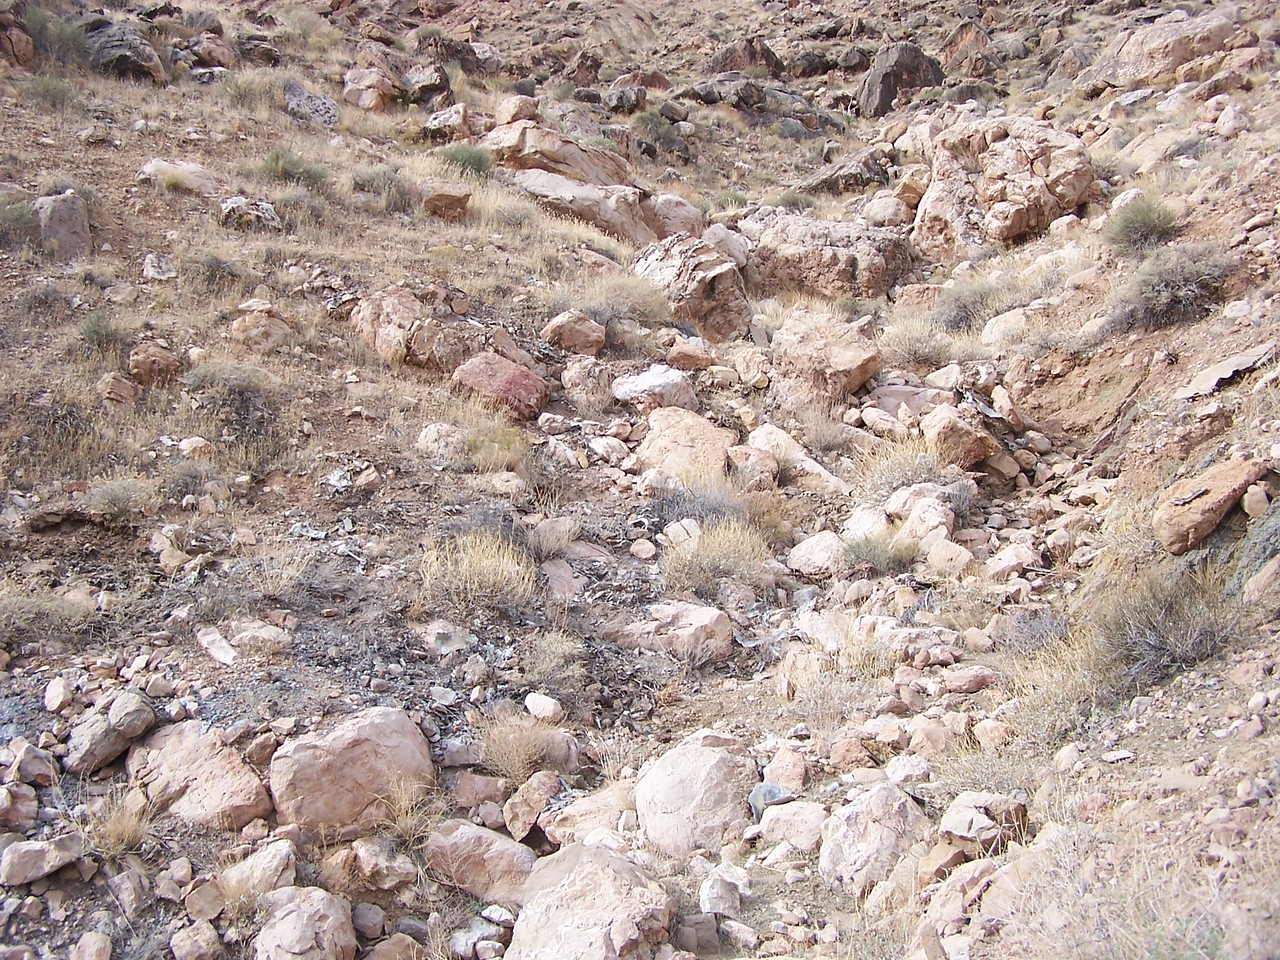 Burn area at TWA main impact site. The bottom of ravine contained the majority of burned wreckage. March 2006 visit.